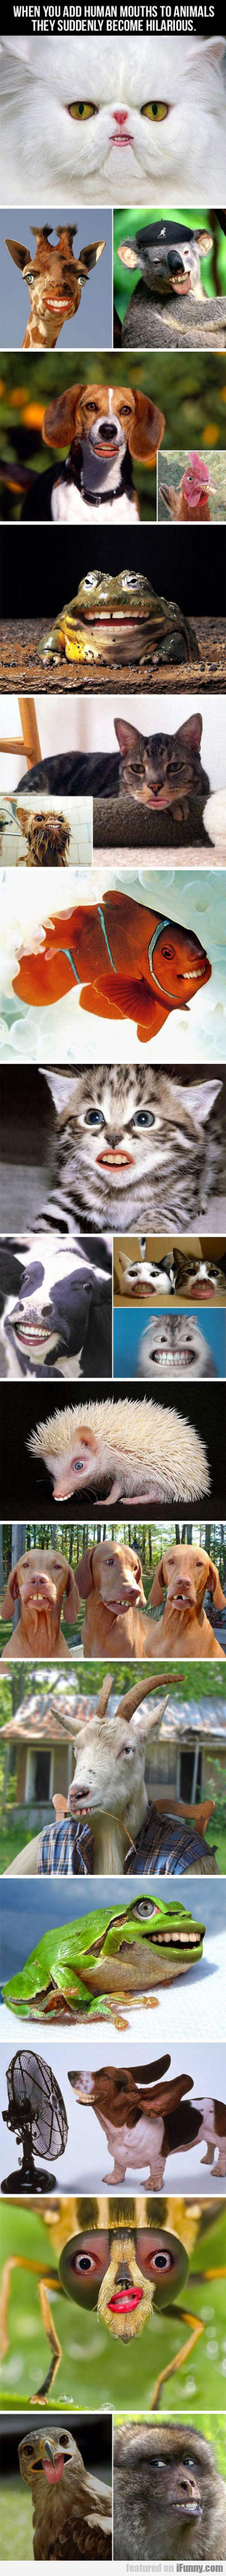 When You Add Human Mouths To Animals